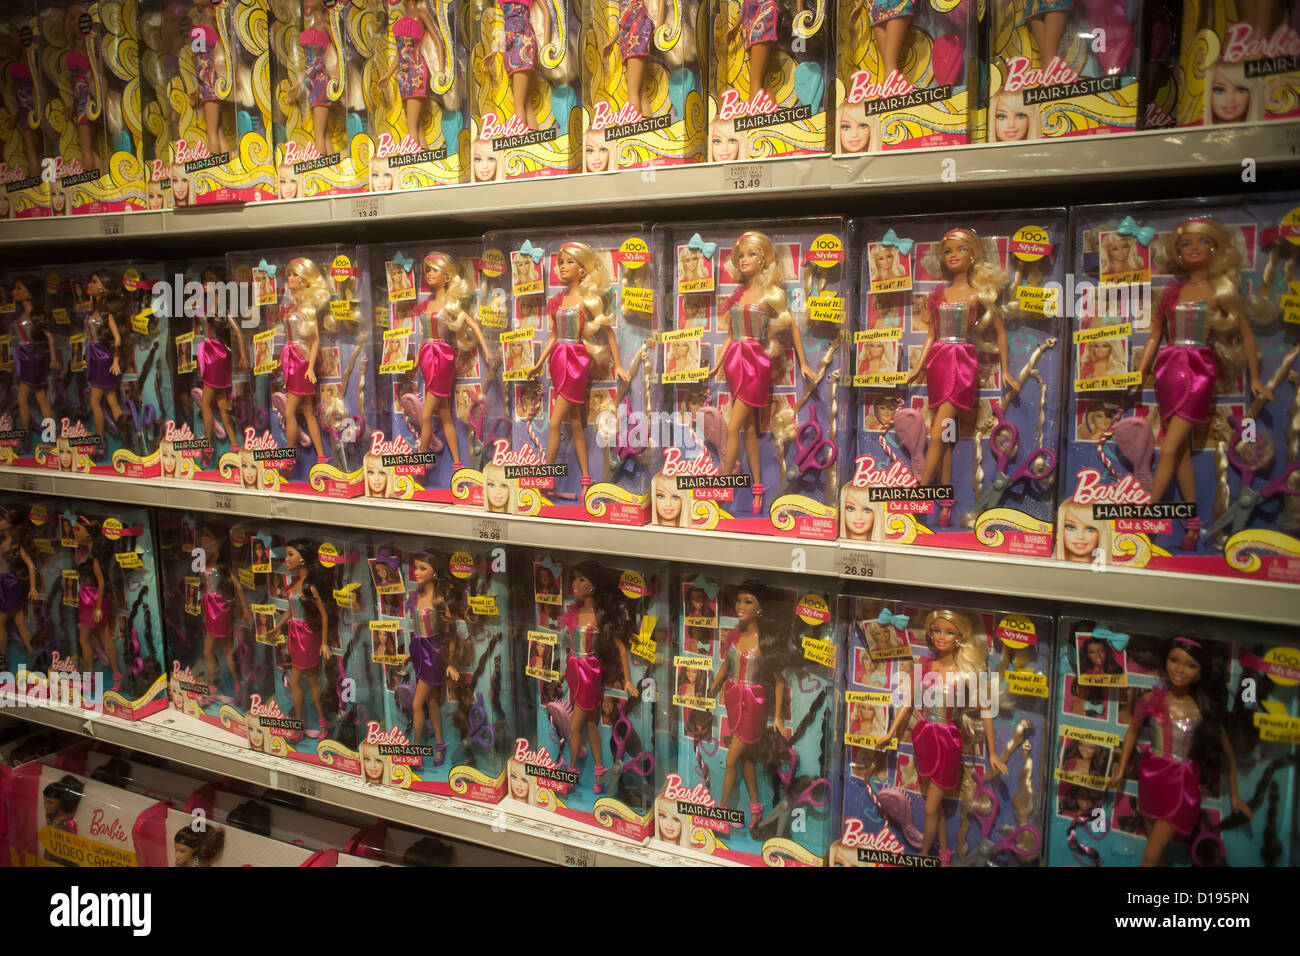 Barbie Doll Display Inside The Toys R Us Store In Busy Times Square